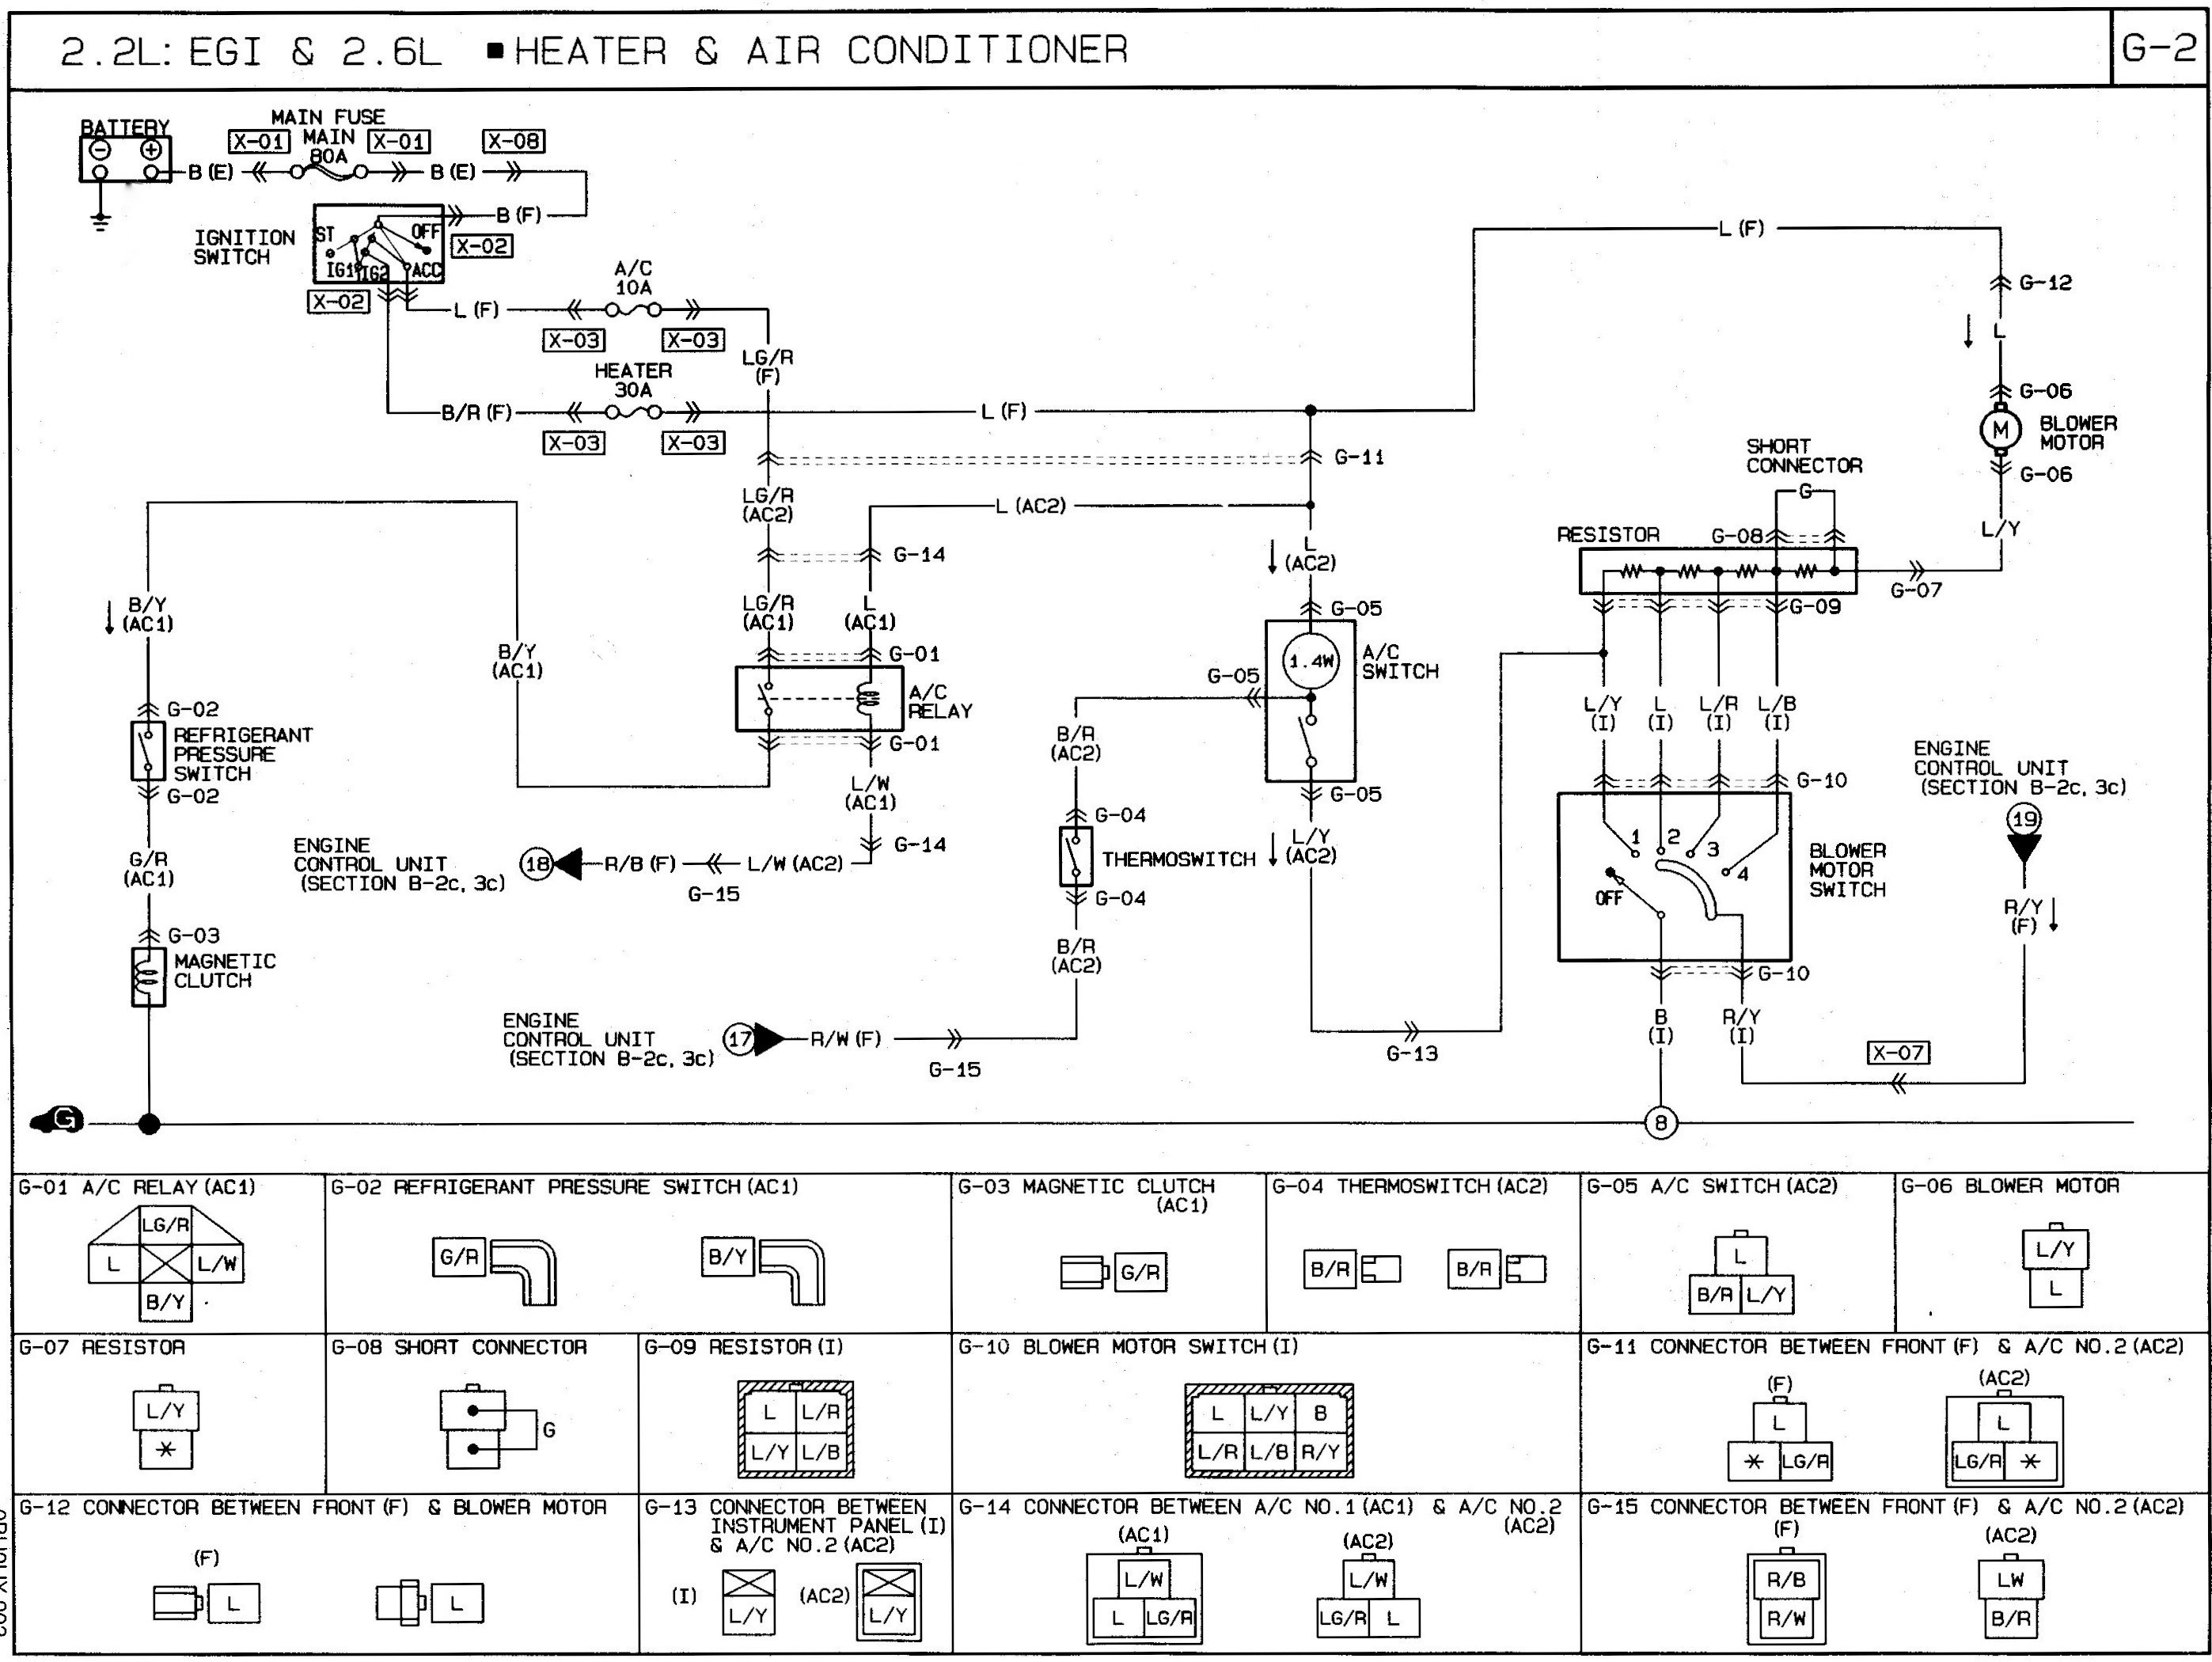 carrier split ac wiring diagram Download-Wiring Diagram Air Conditioner Inverter Save Carrier Aircon Wiring Diagram Wiring Diagram 11-r